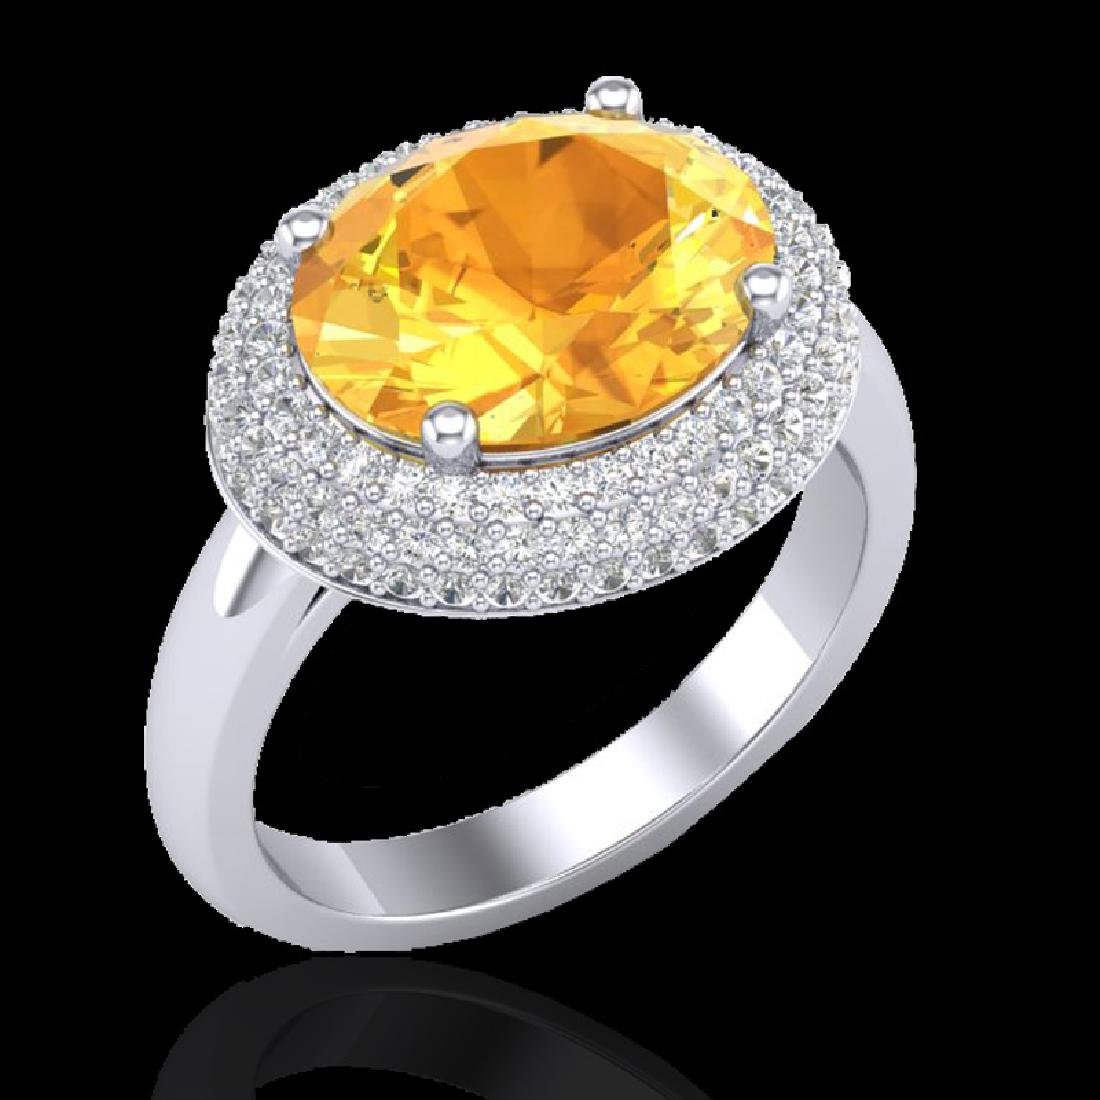 4 CTW Citrine & Micro Pave VS/SI Diamond Ring 18K White